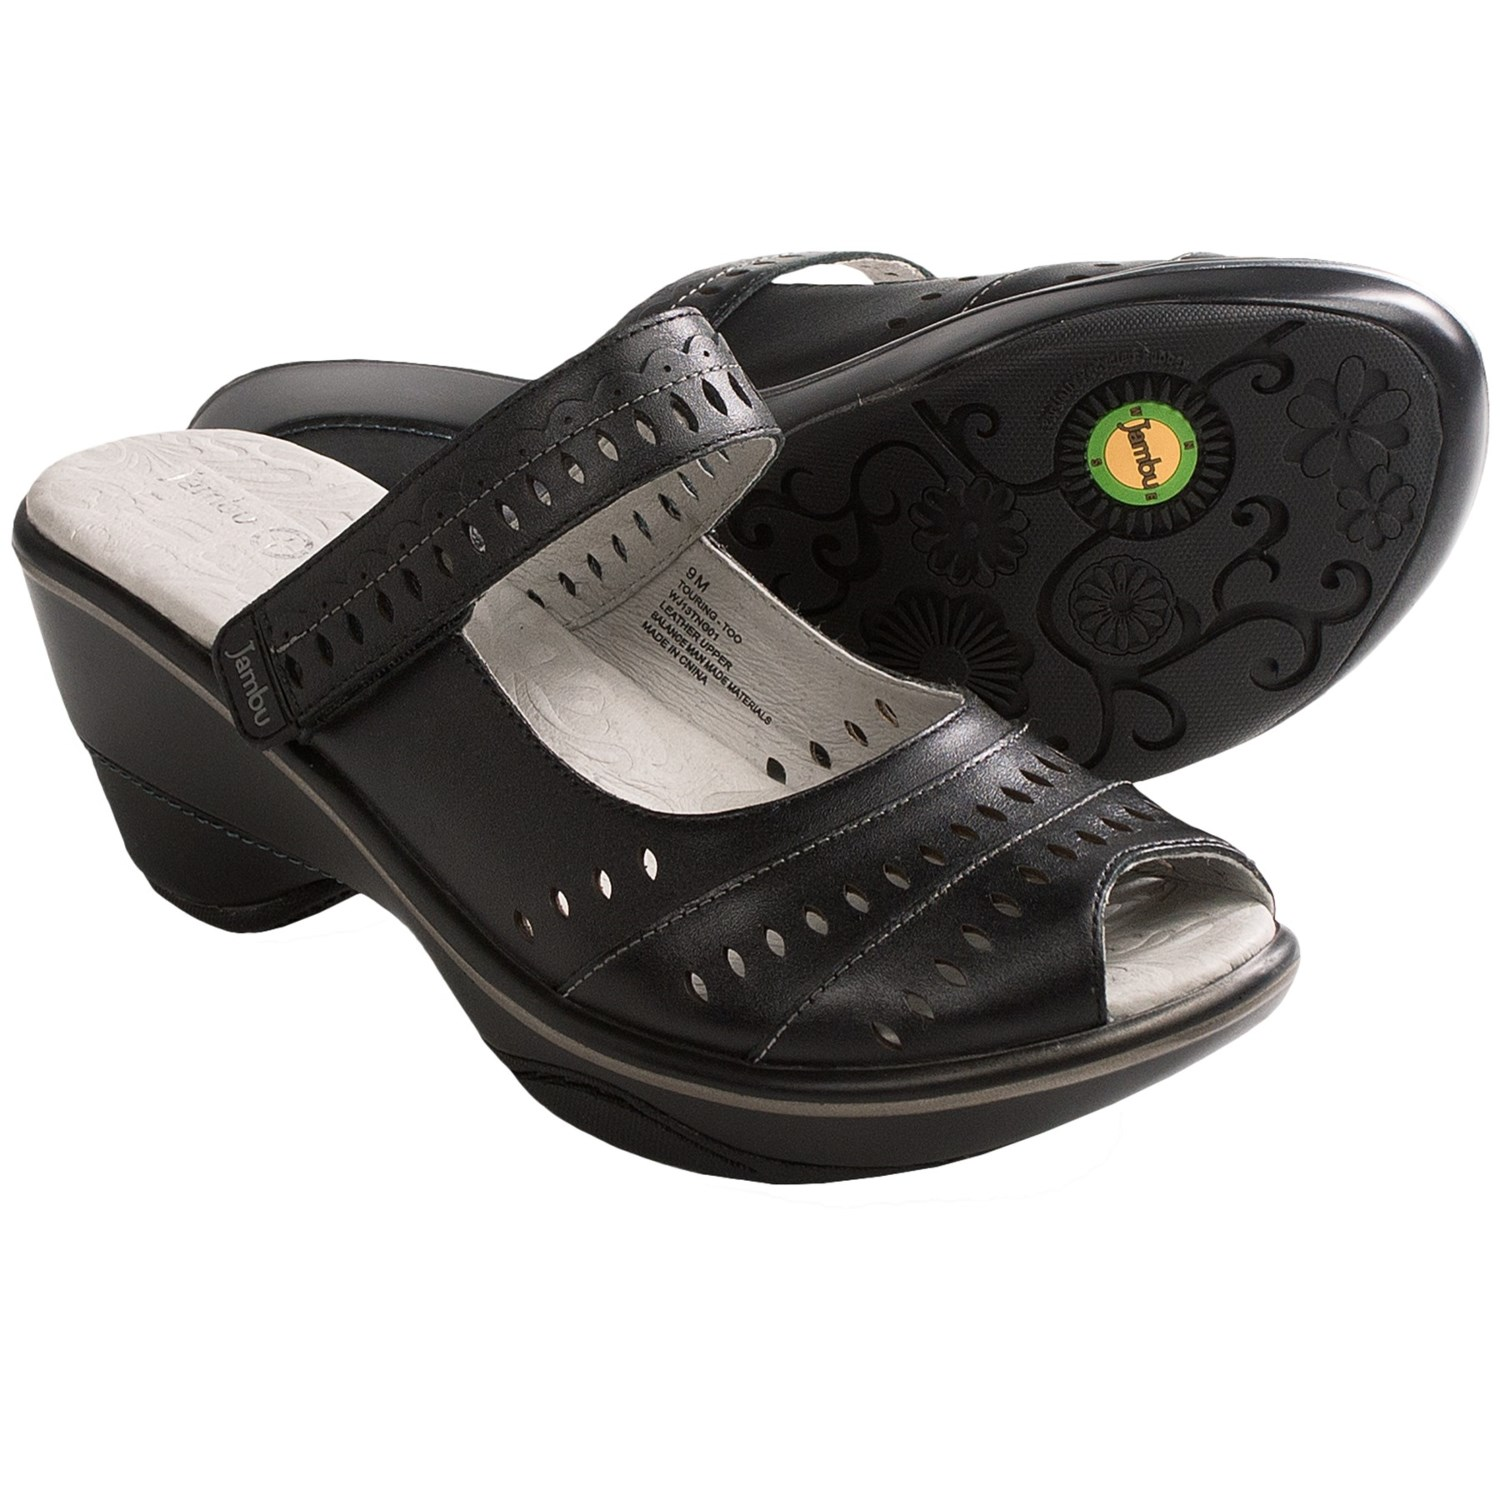 Jambu Touring Shoes Reviews